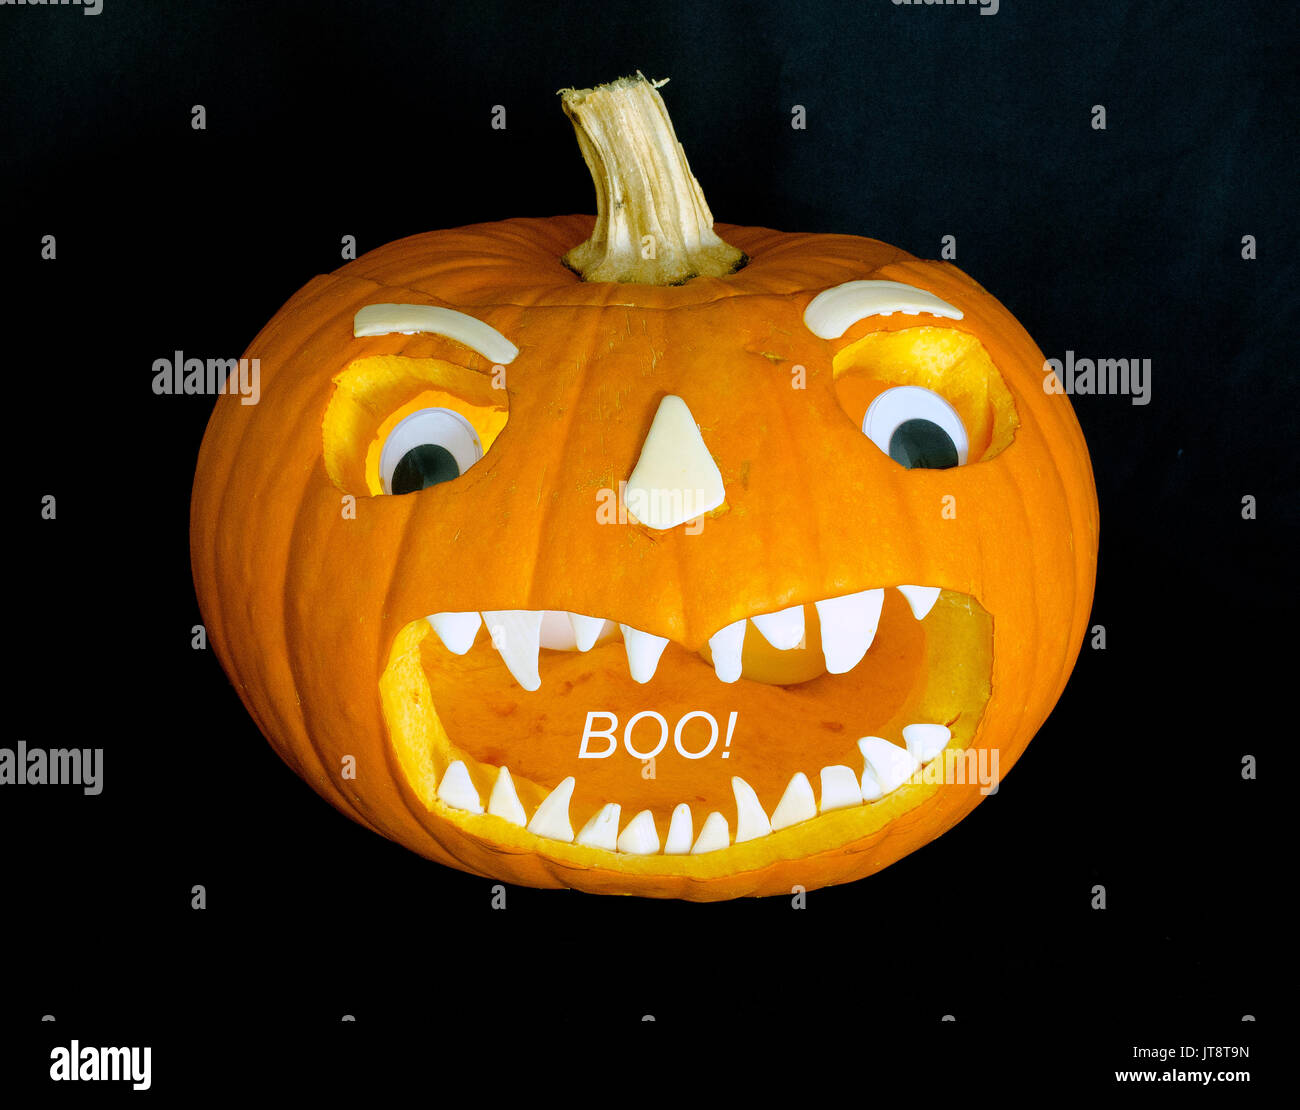 This scary Jack-o'-lantern face that was cut into a ...